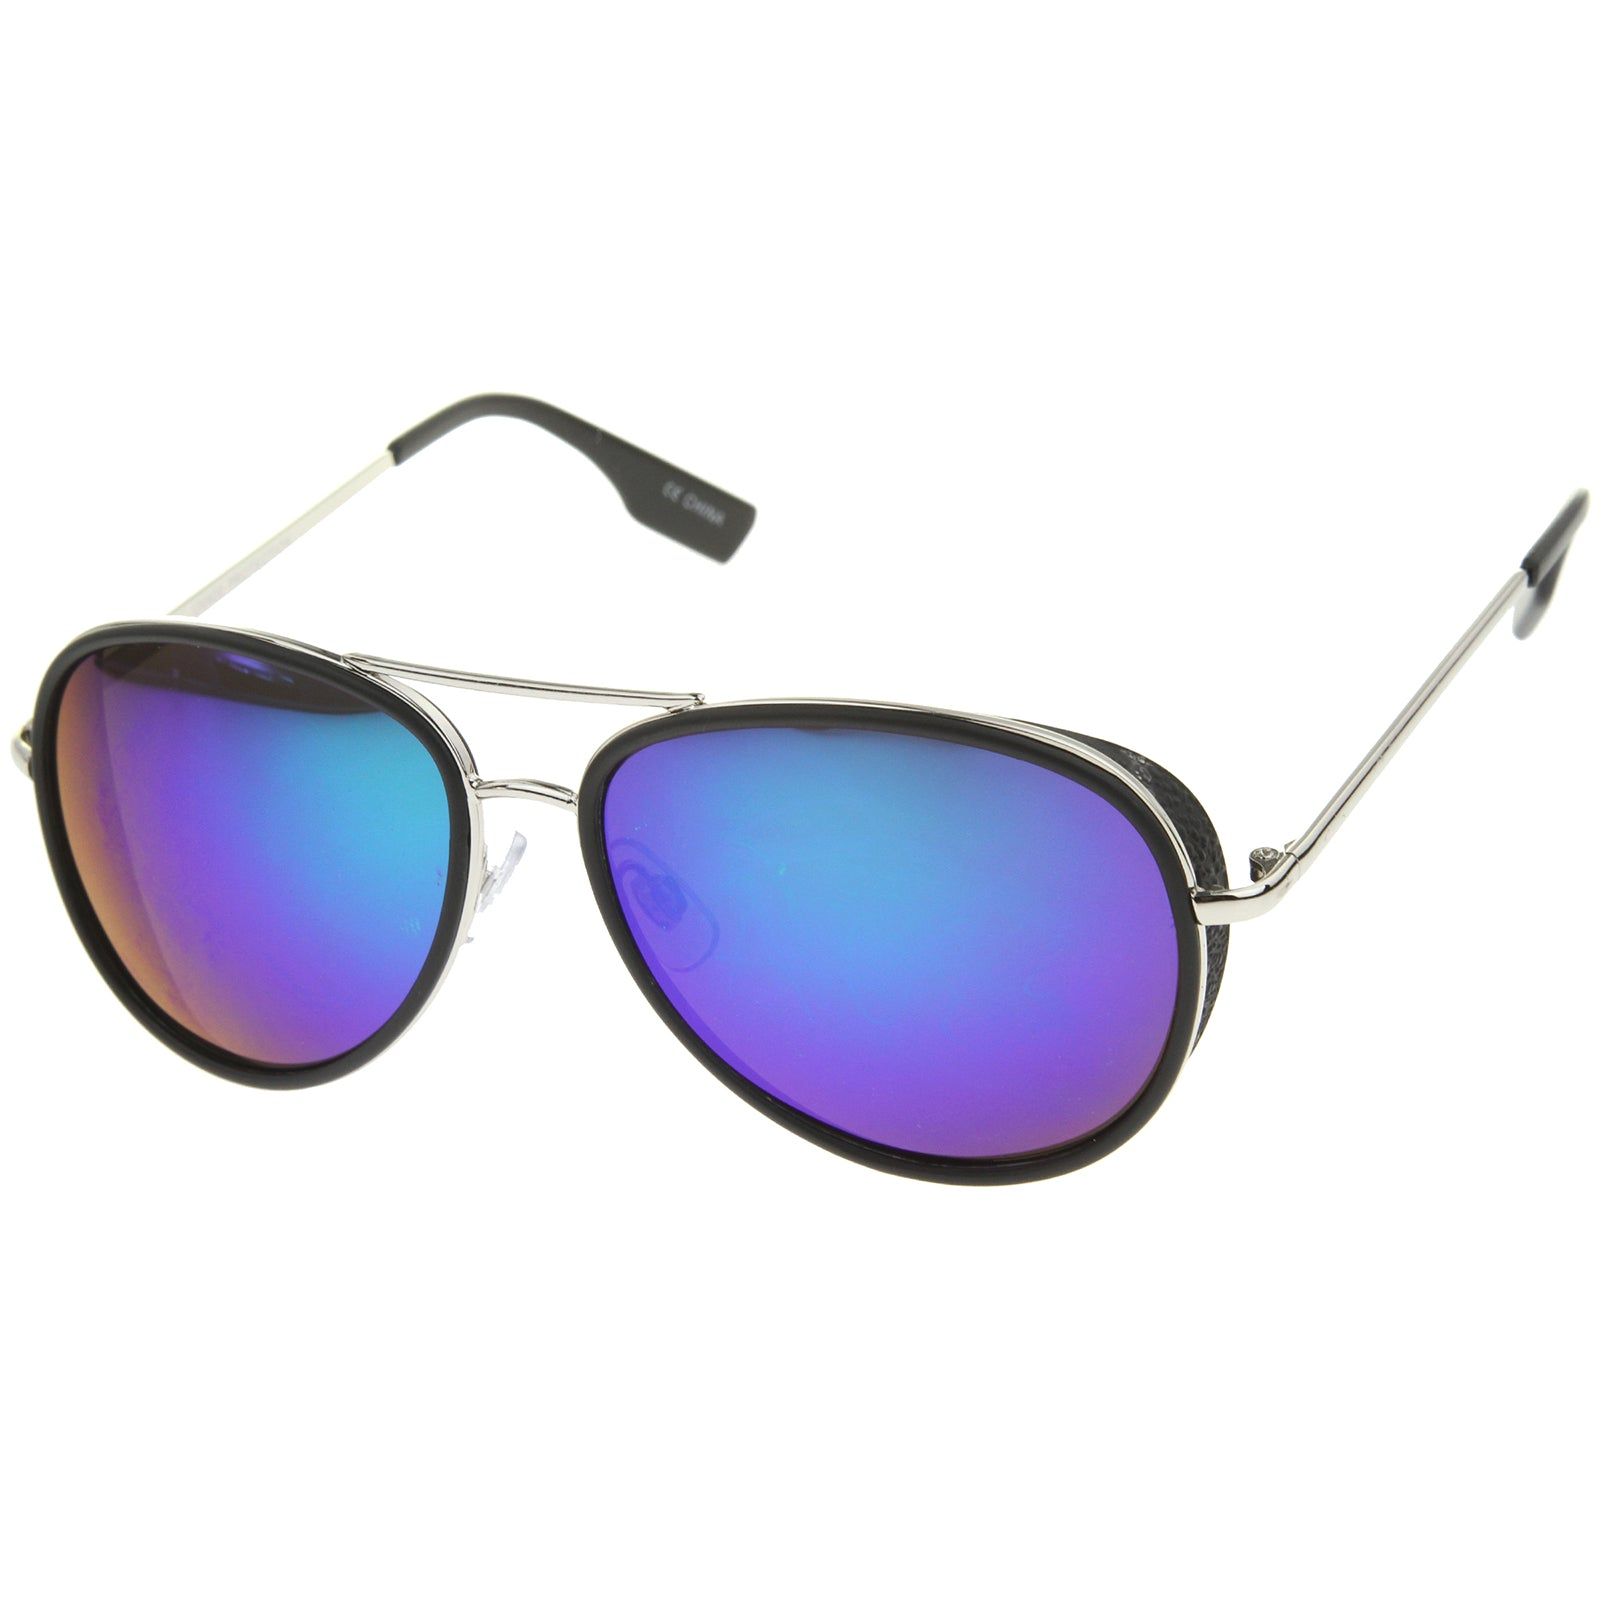 Mens Aviator Sunglasses With UV400 Protected Mirrored Lens - sunglass.la - 10